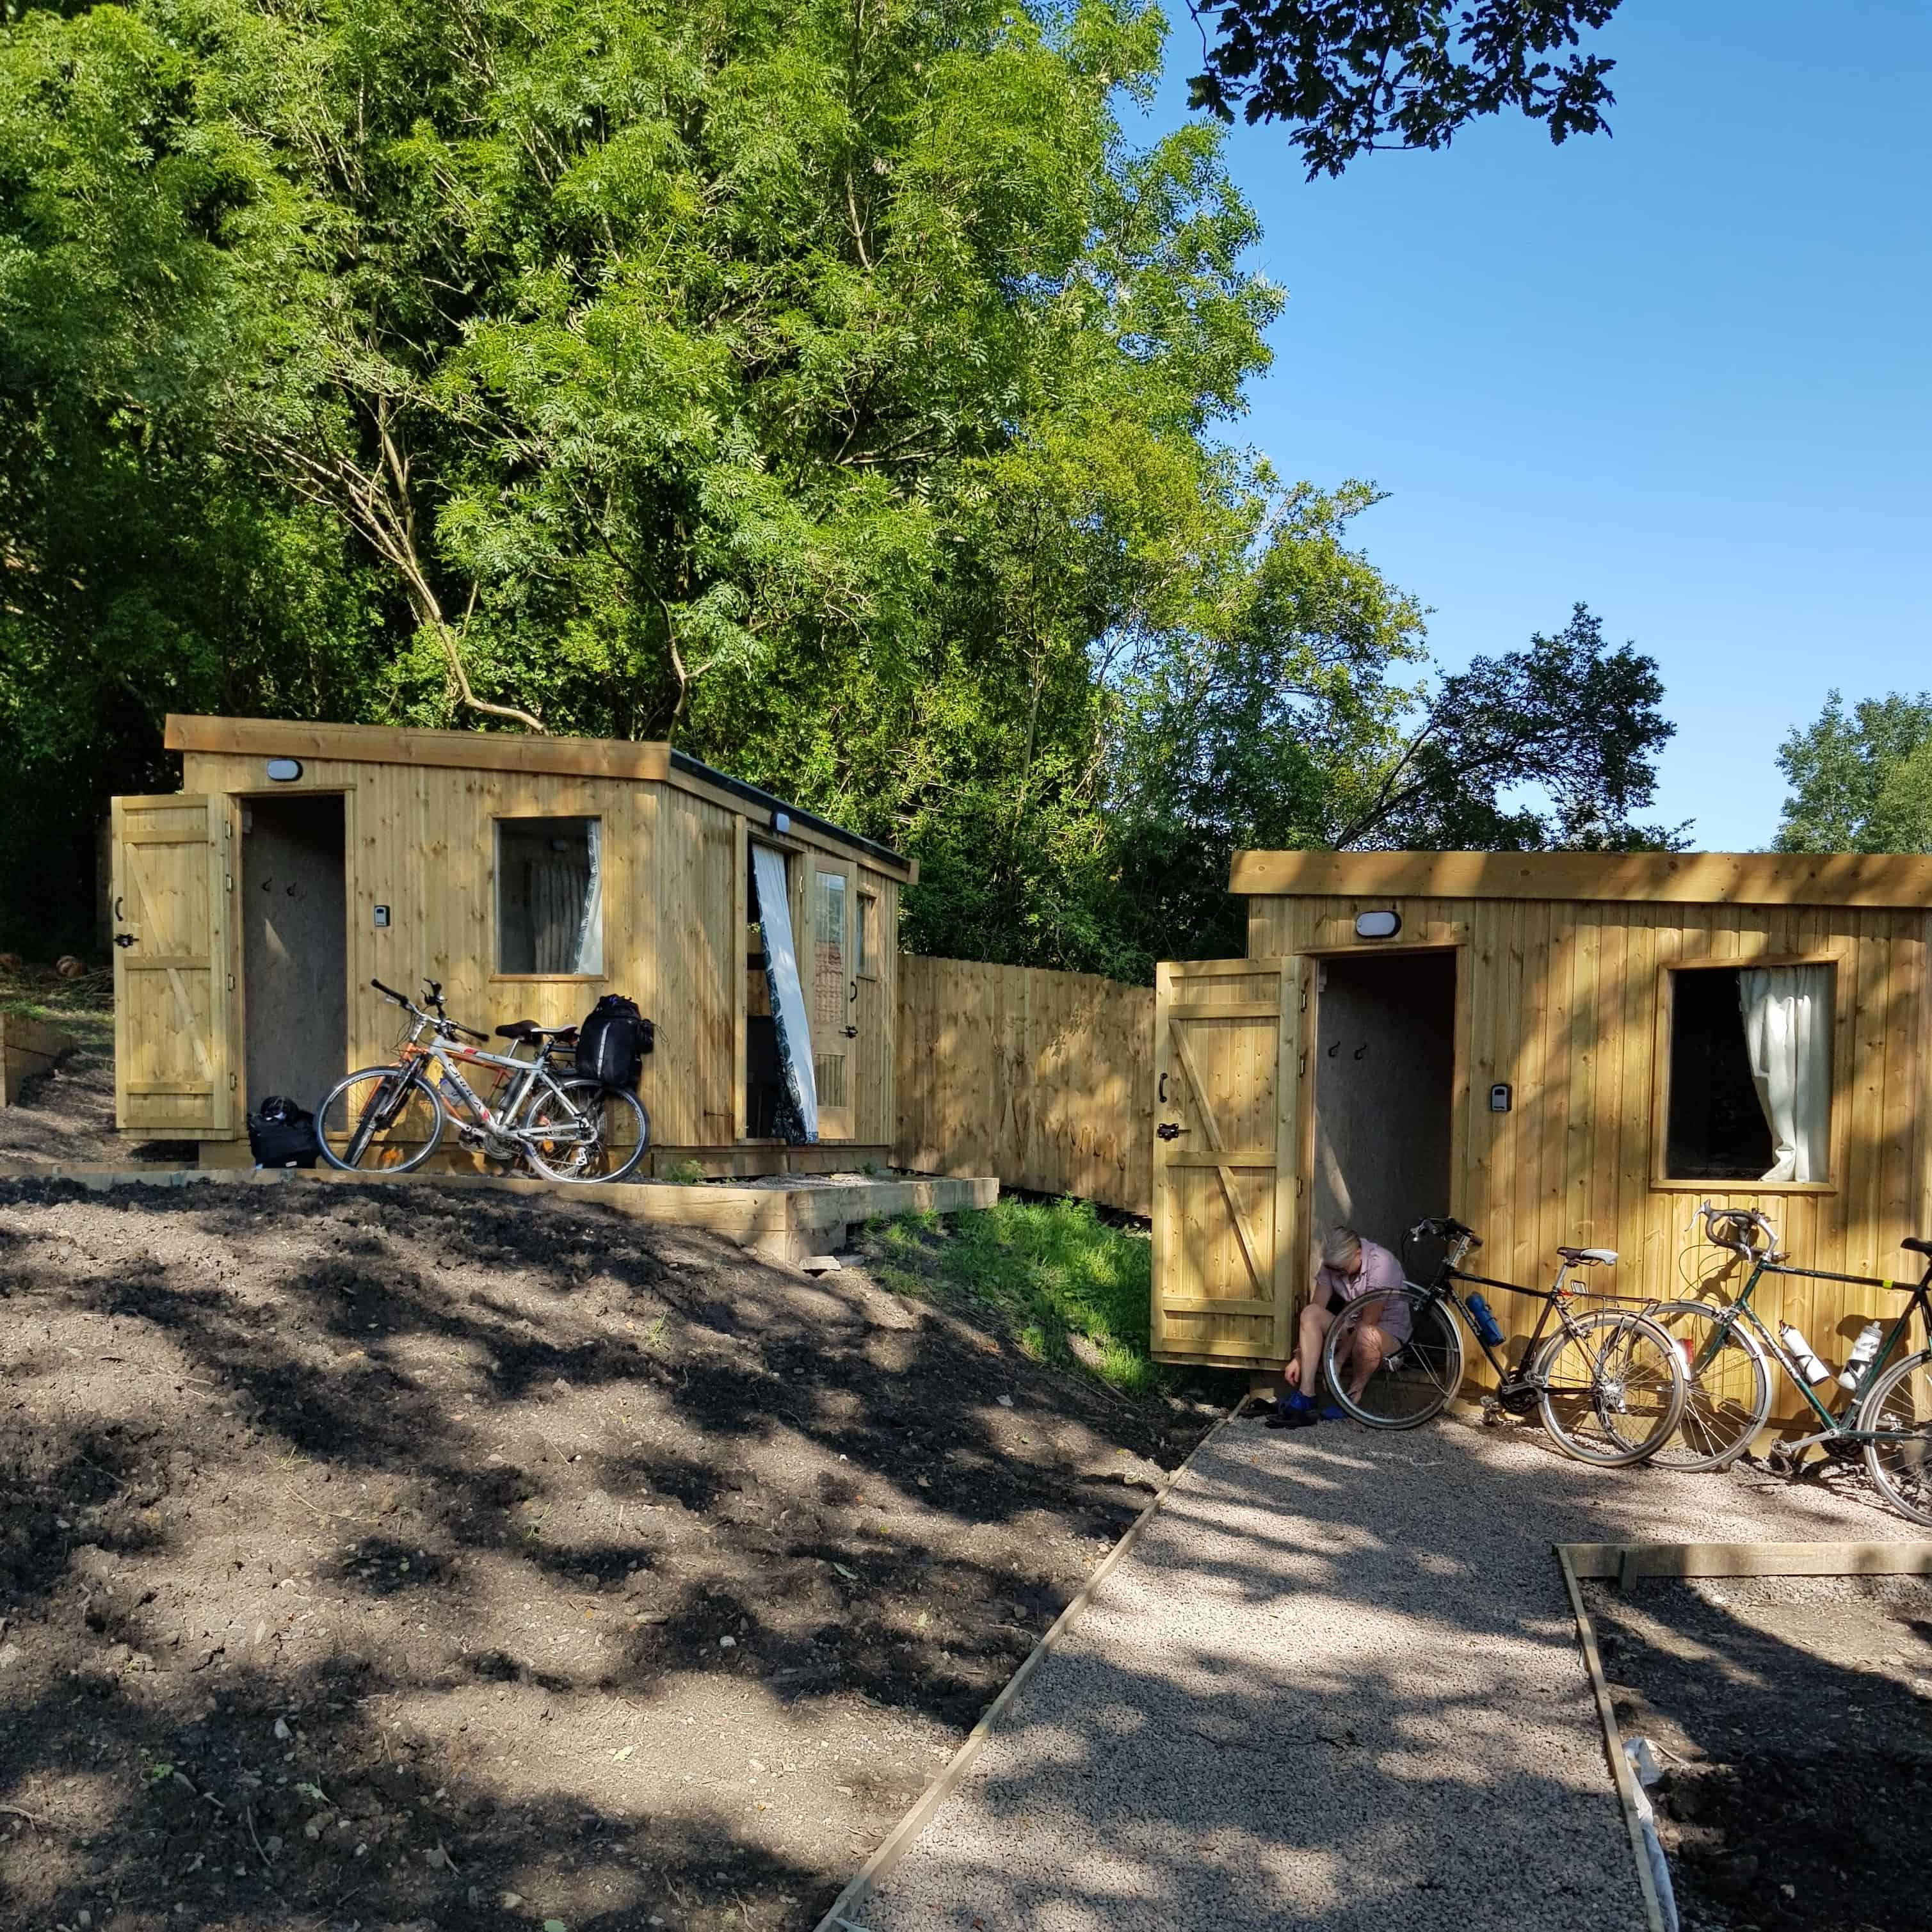 The Roost is designed for people who enjoy the outdoors - cyclists, mountain bikers, walkers